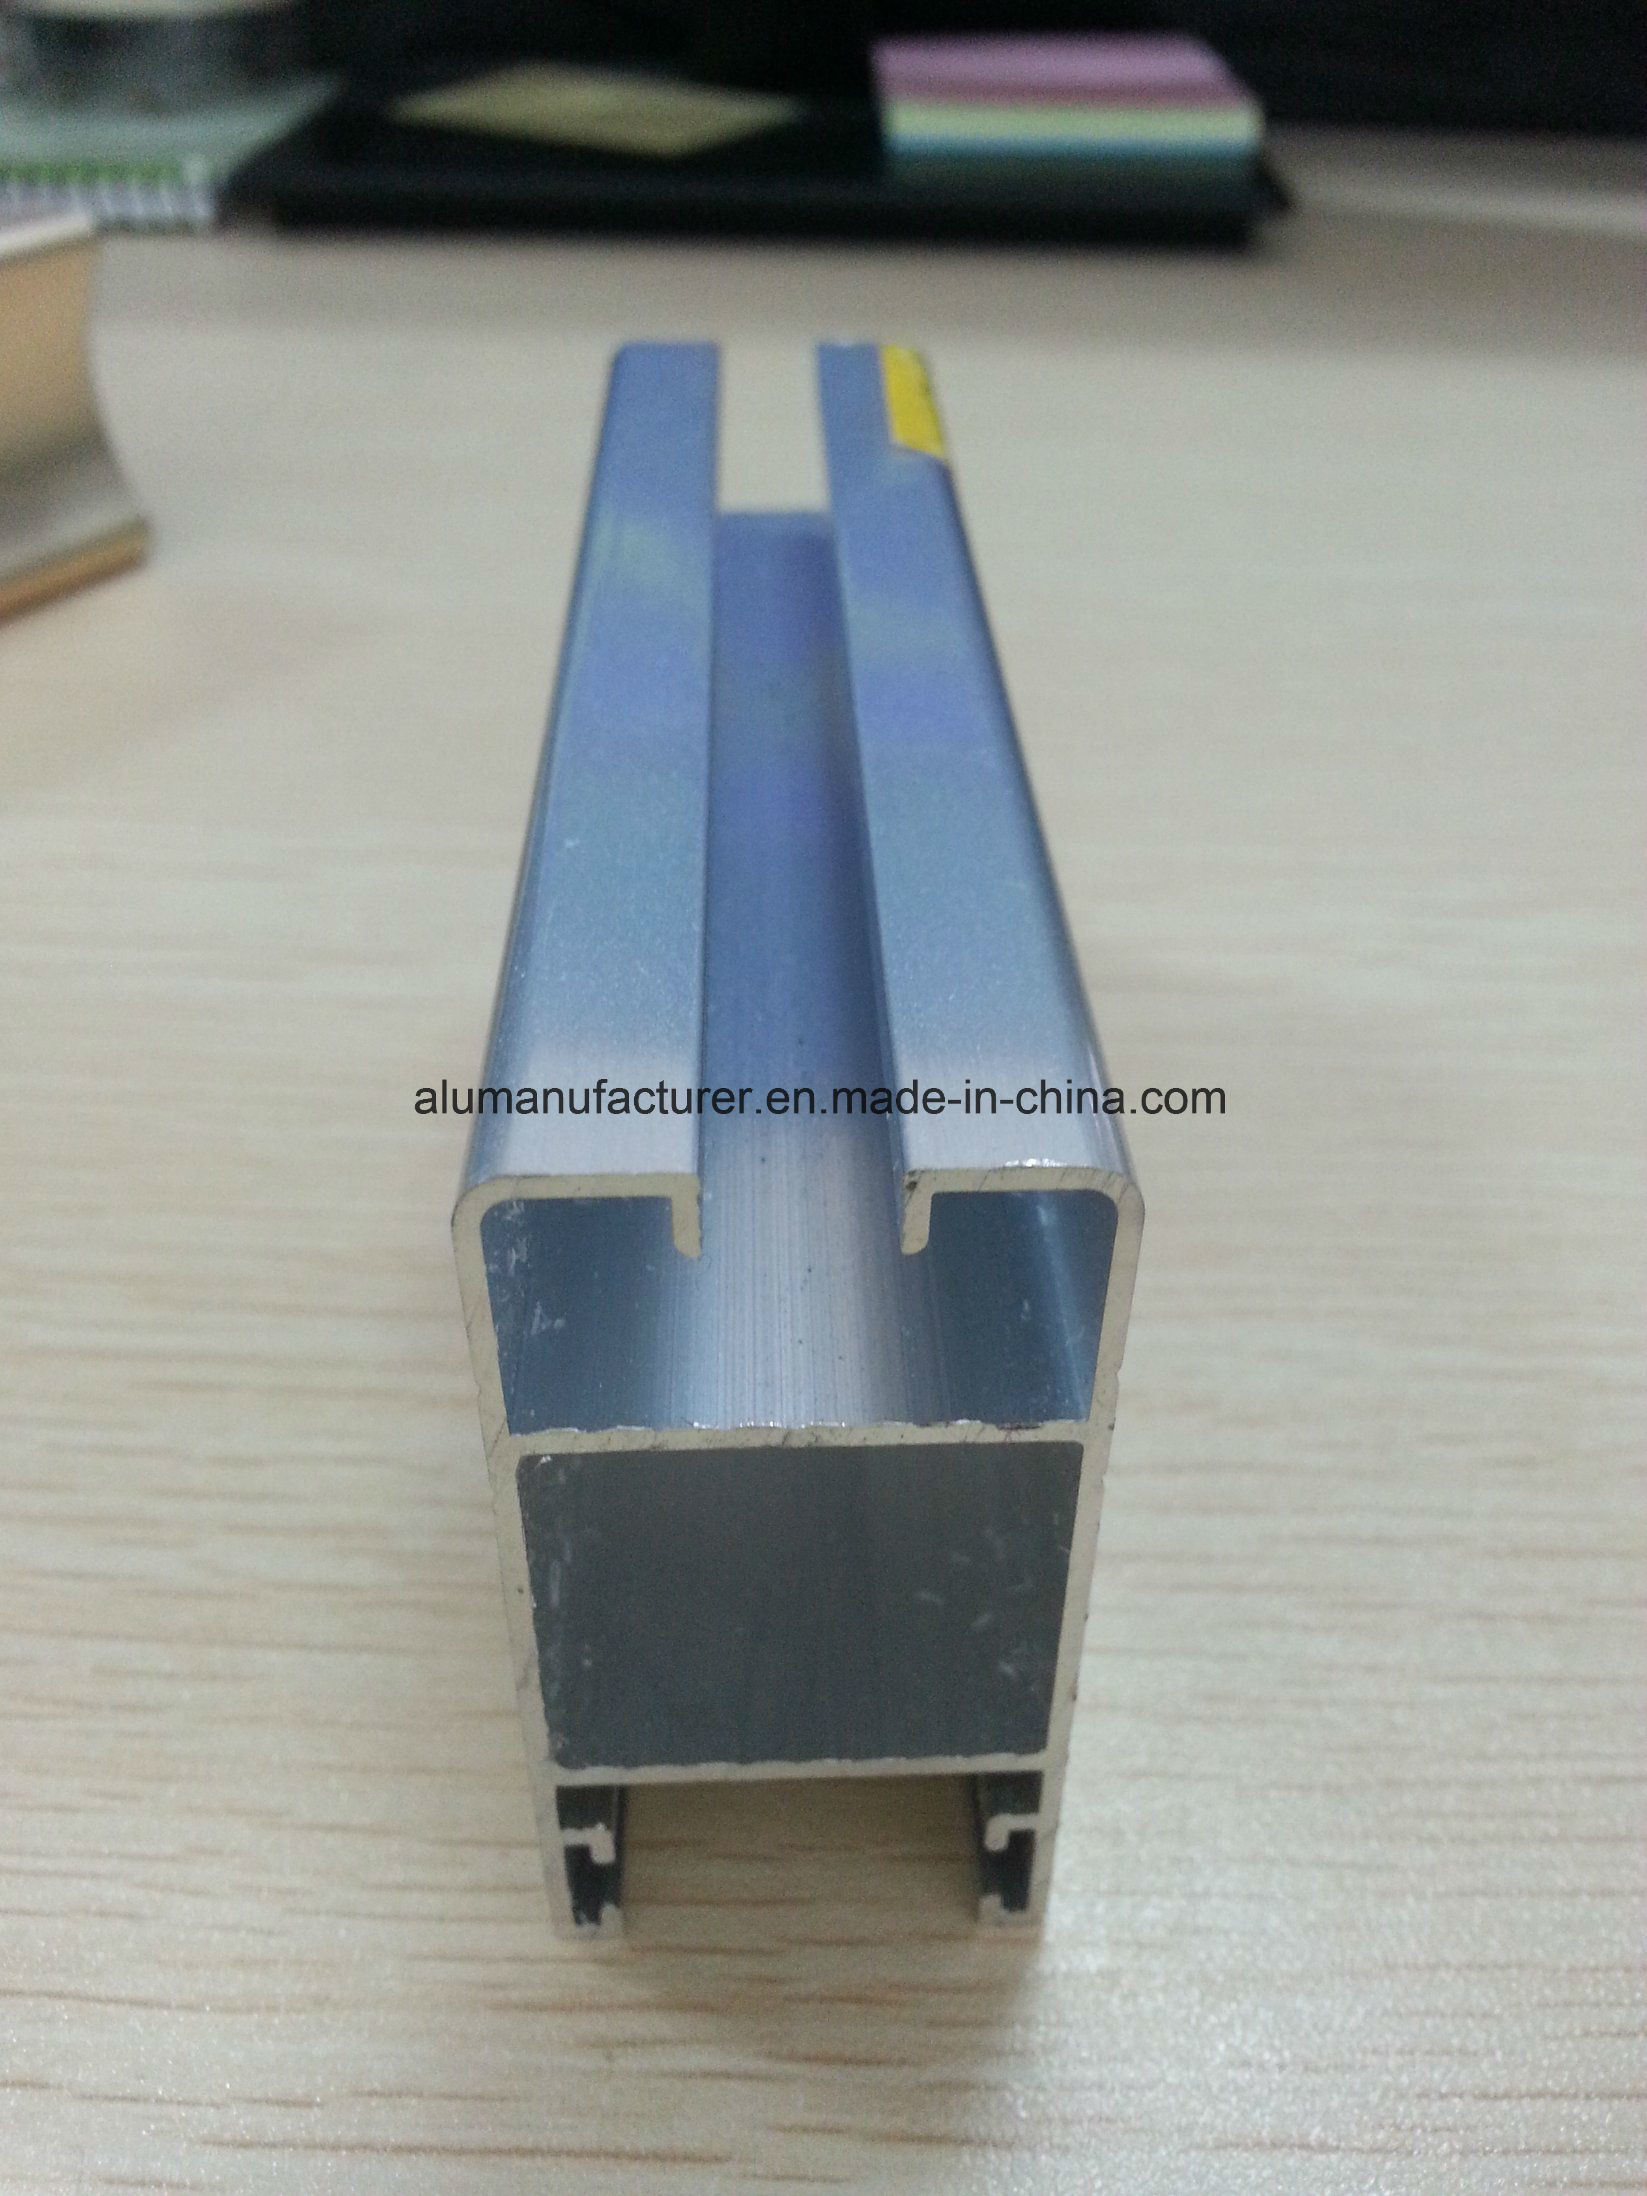 Silver Anodize Aluminium Alloy Extrusion Profile for Door and Window